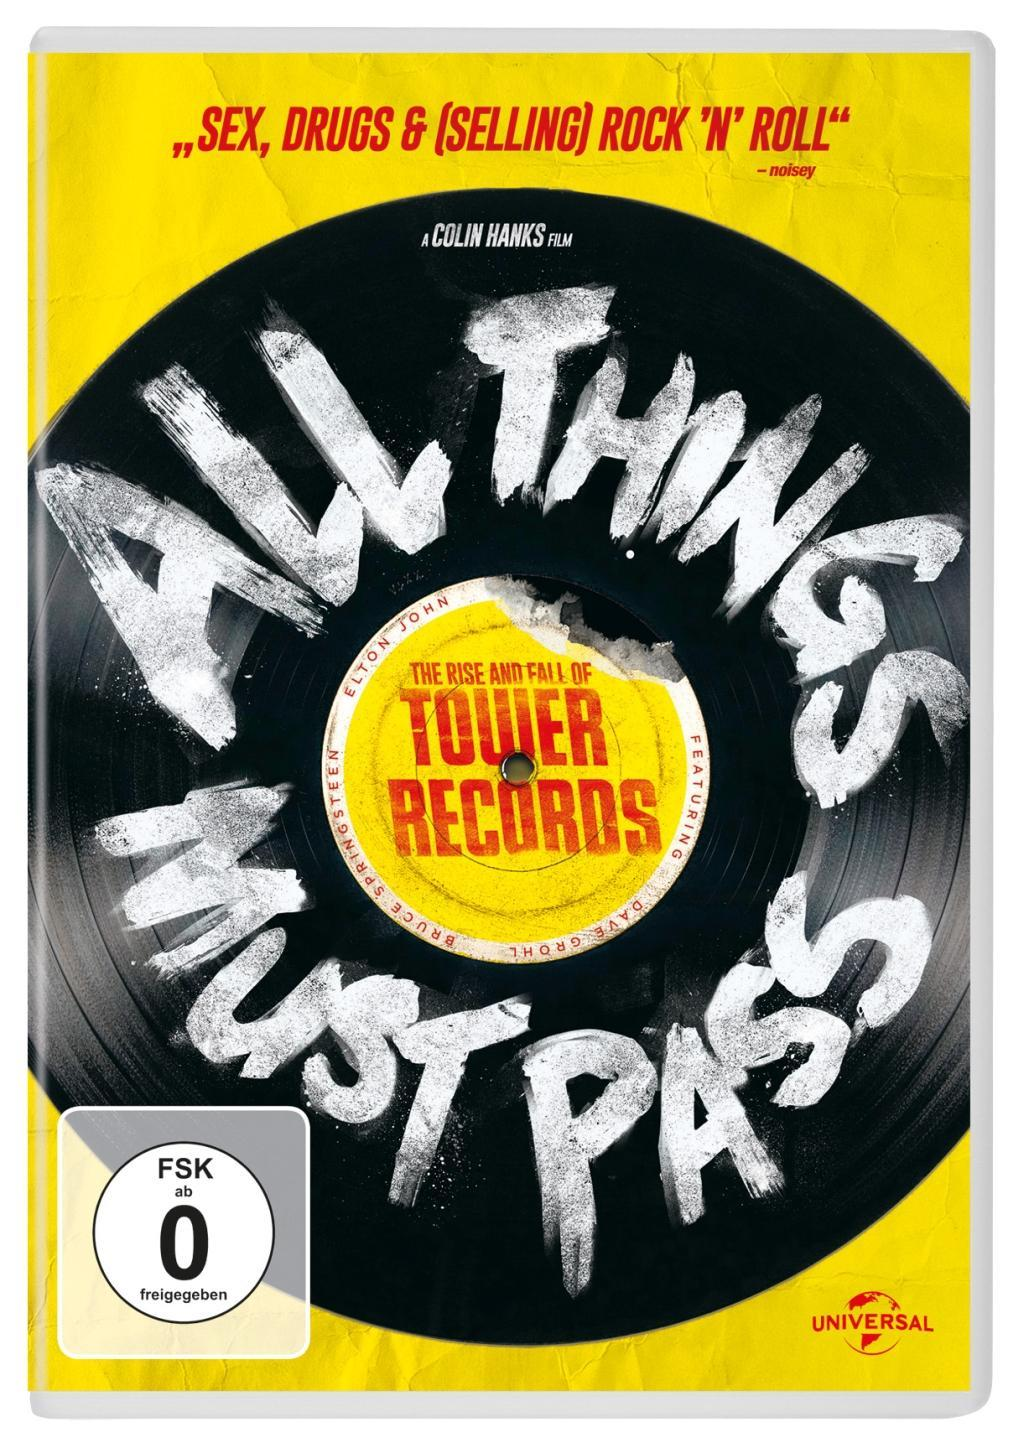 All Things Must Pass - The Rise and Fall of Tower Records  Steven Leckart  DVD  Deutsch  2015